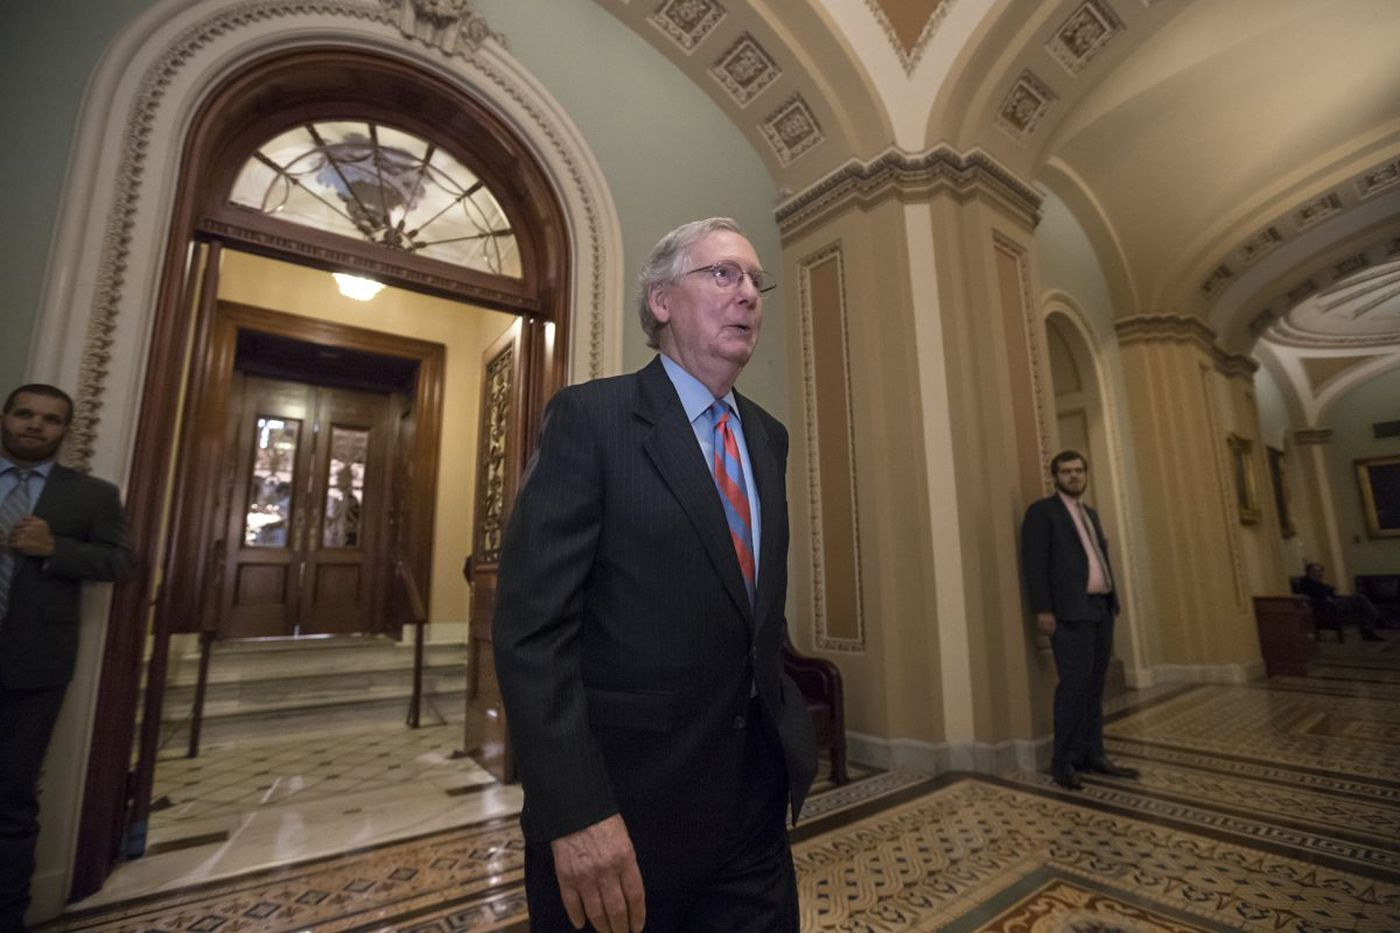 Health repeal wrecked, GOP hopes to deliver on taxes